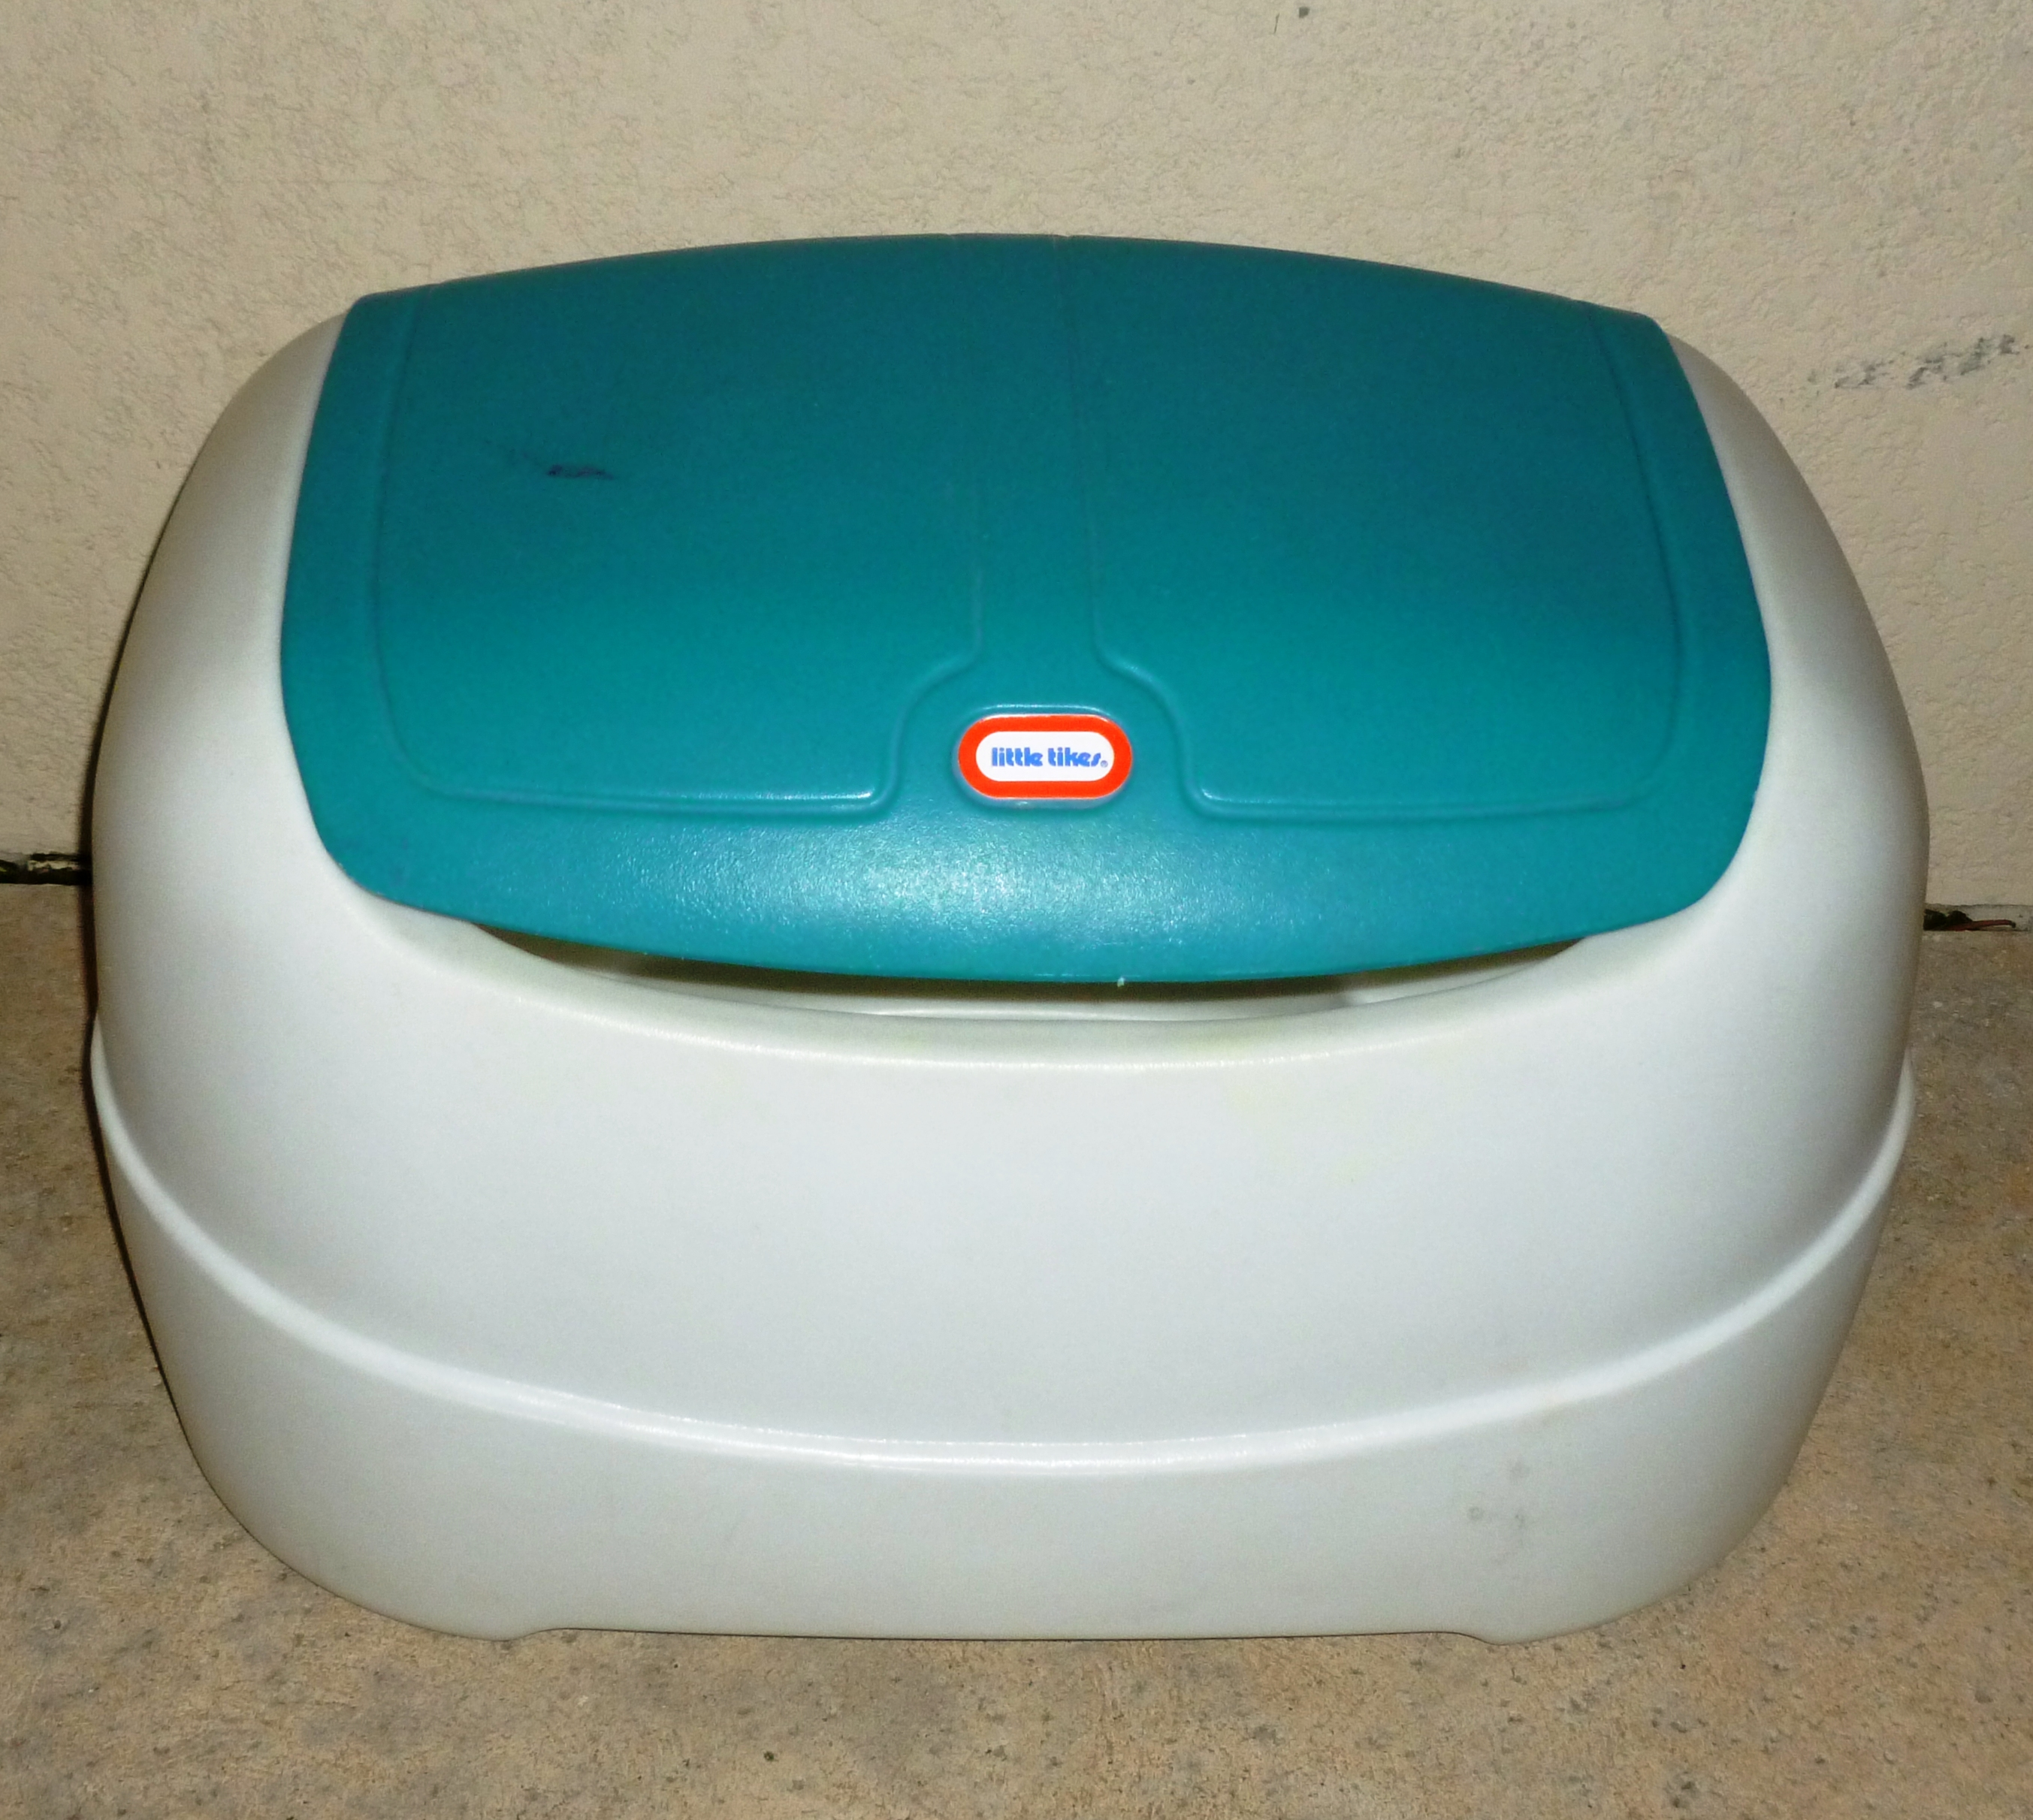 Rounded plastic Little Tykes toy box